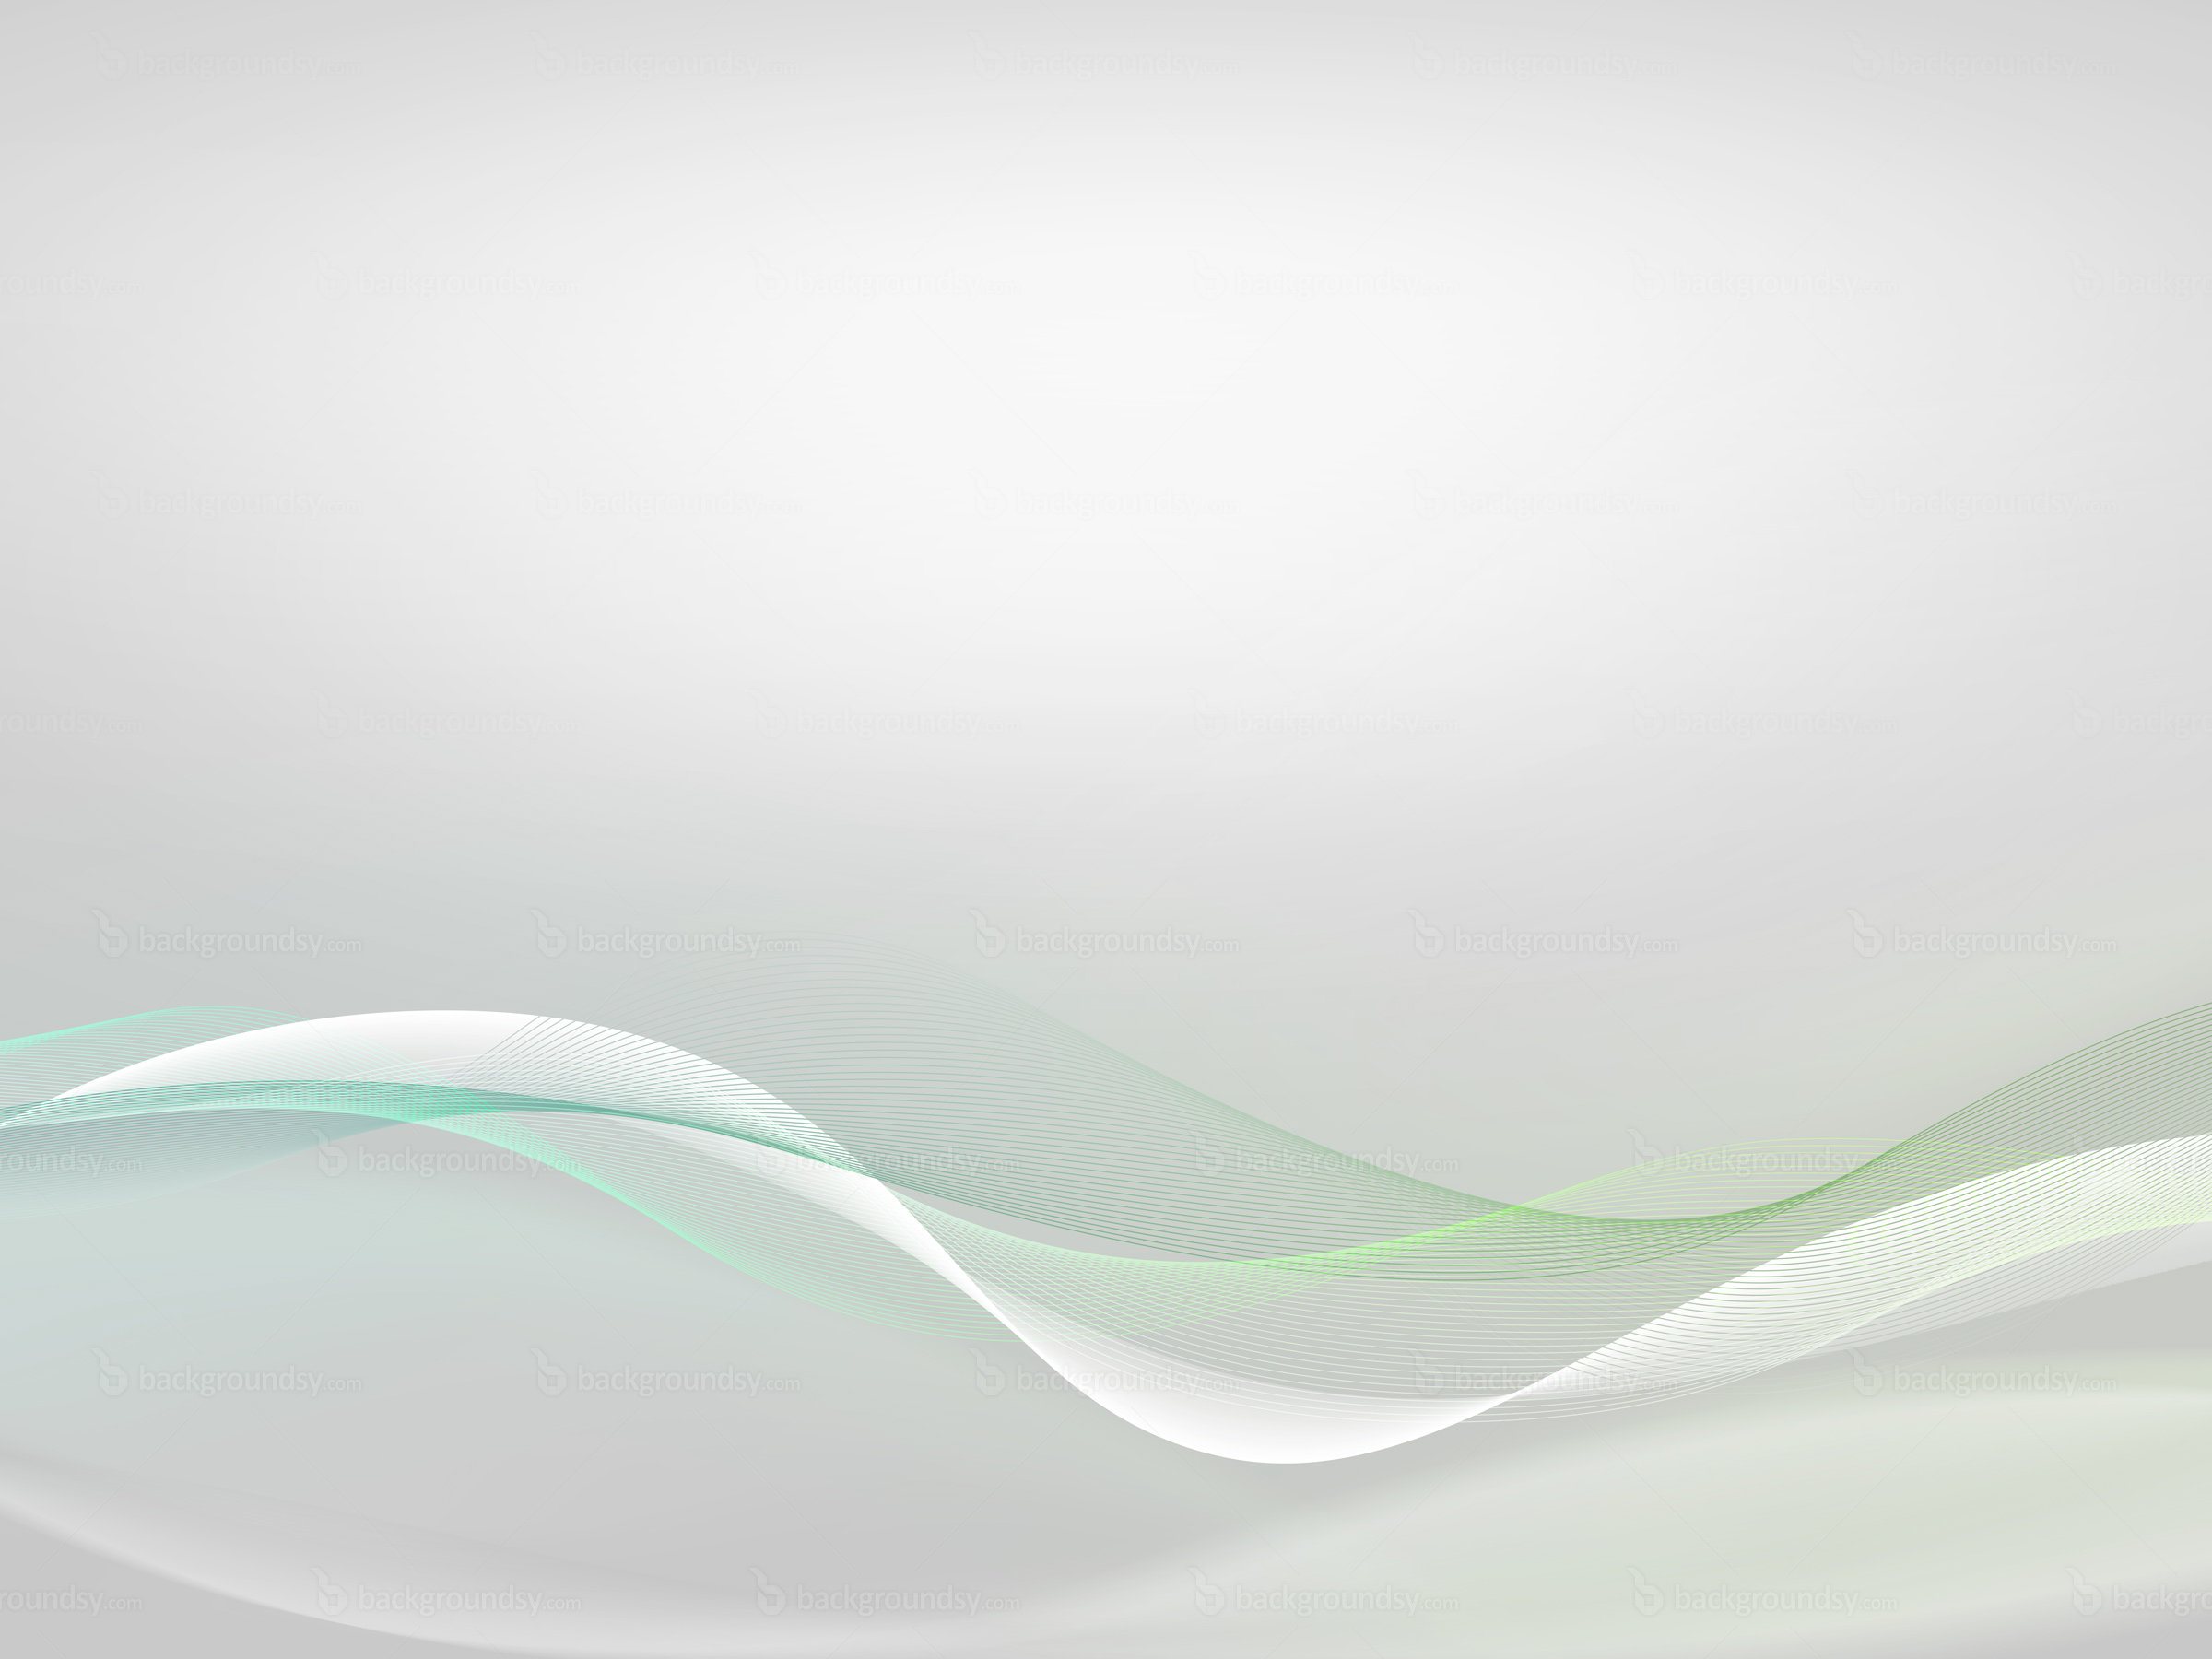 digital-waves-background